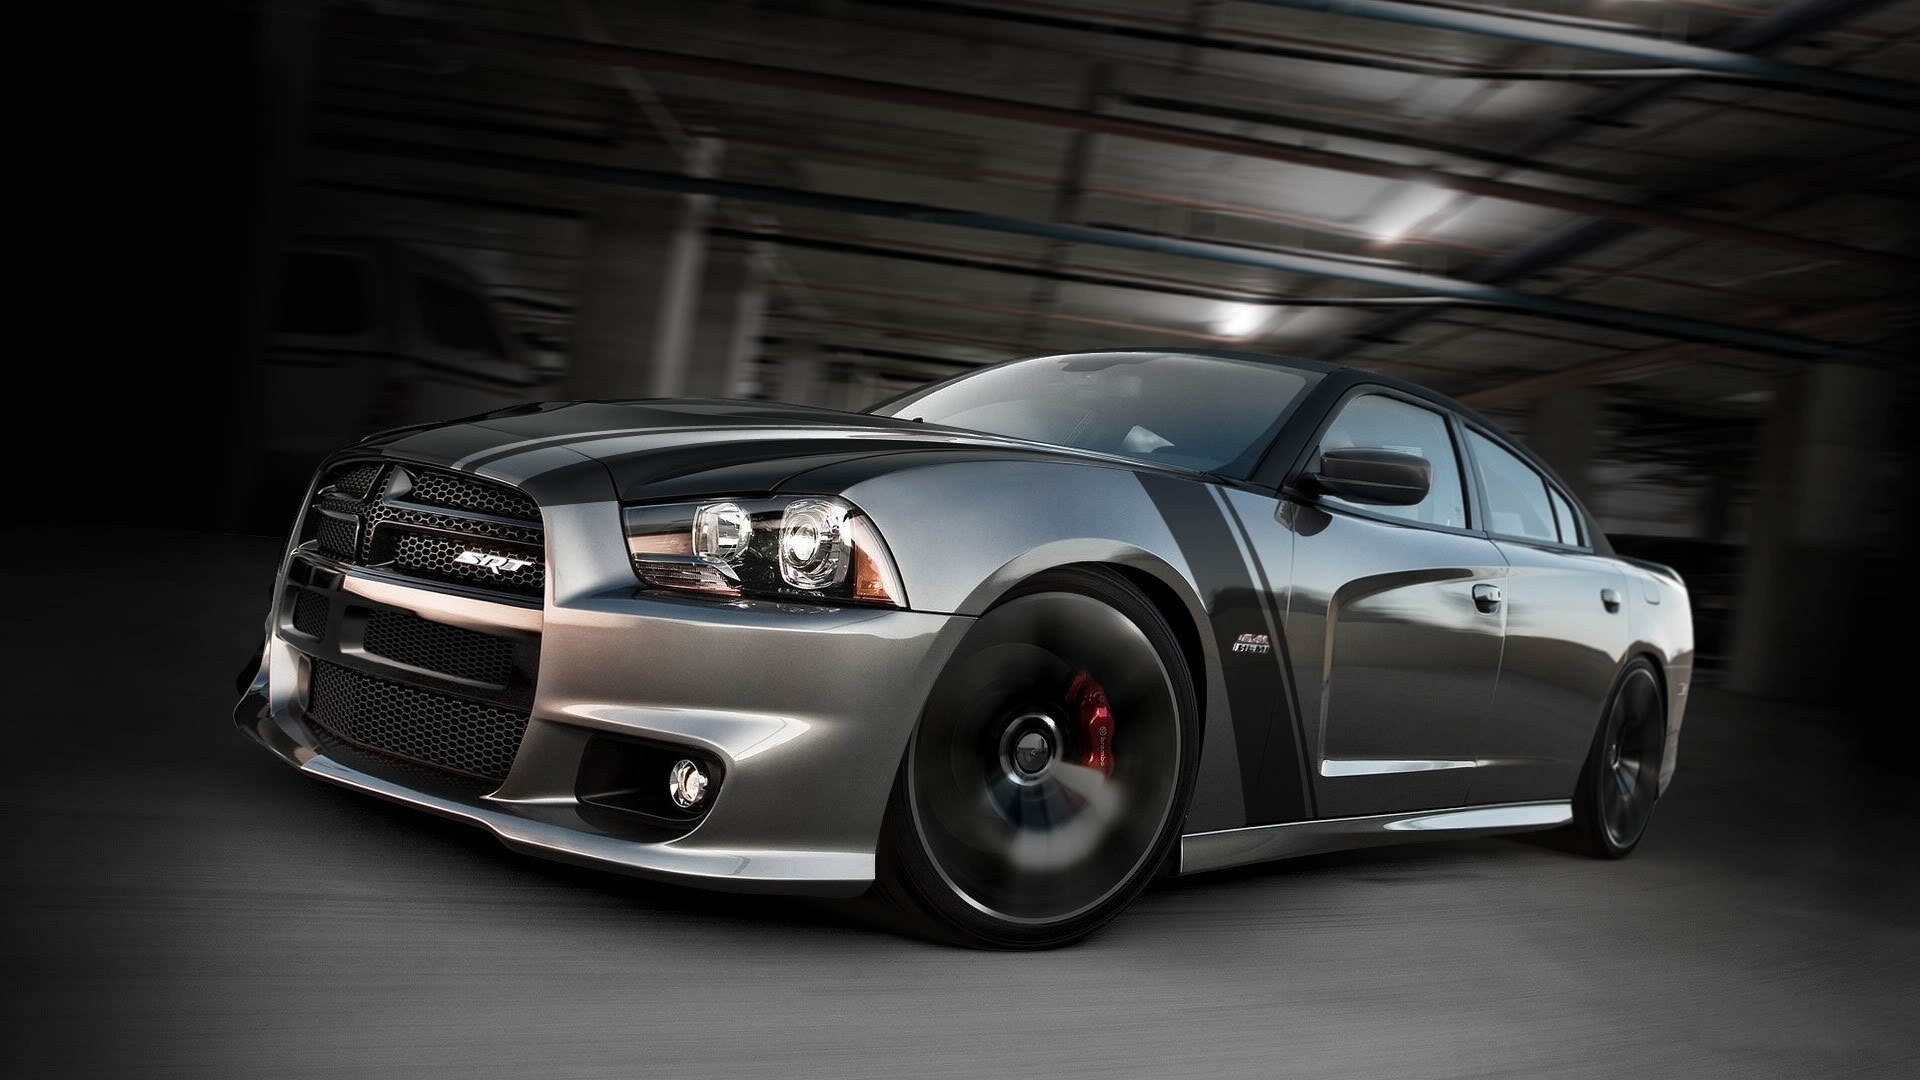 Muscle Car Hd Wallpapers 1080p 15 Excellent Hd Dodge Wallpapers